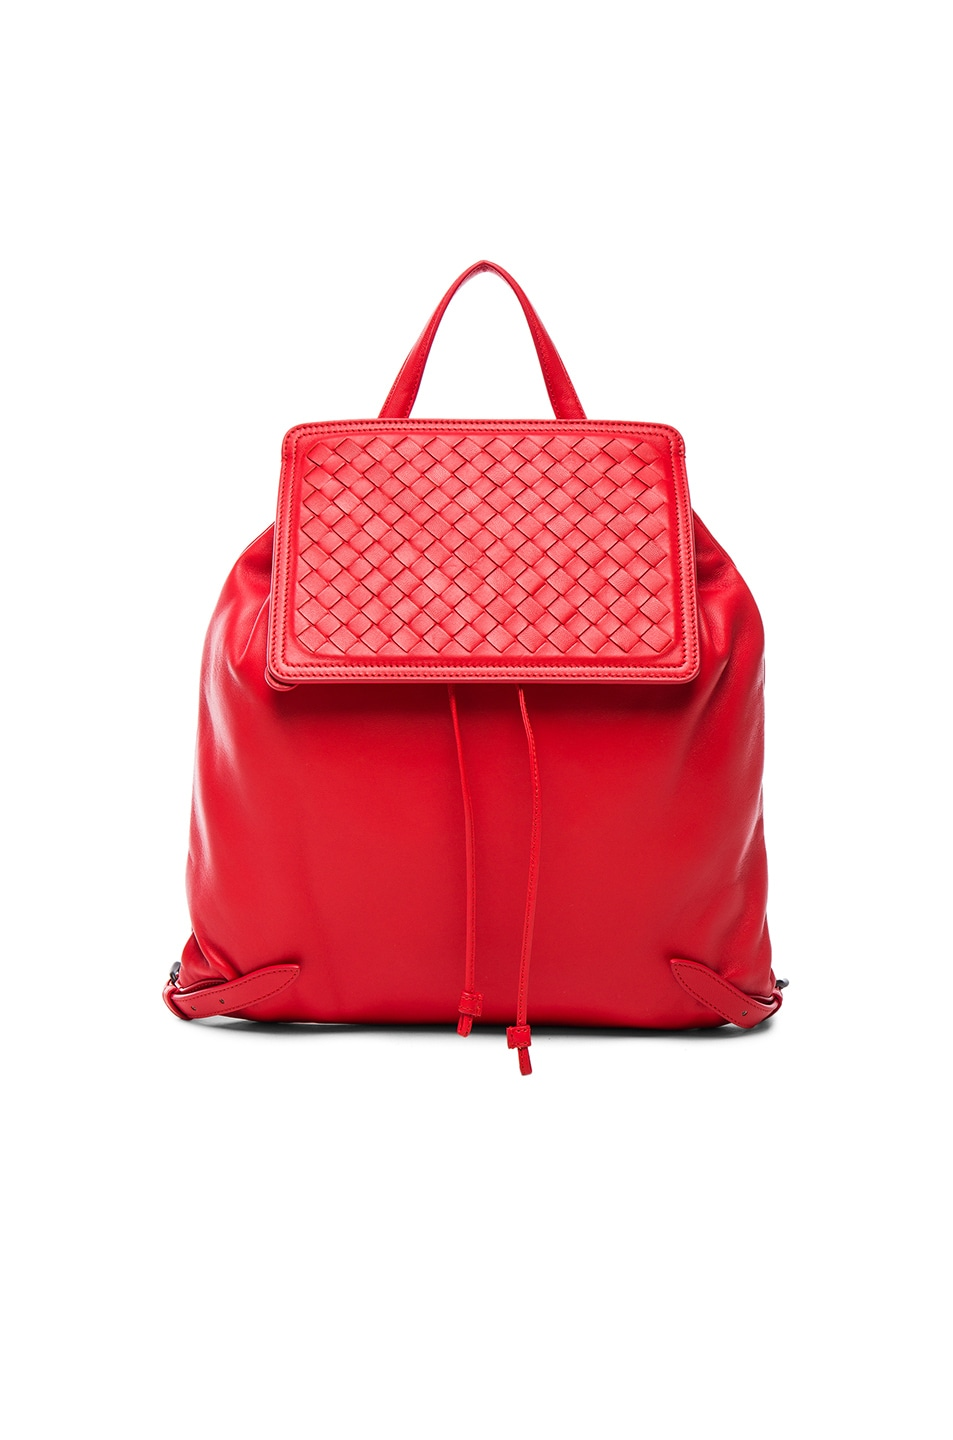 Image 1 of Bottega Veneta Woven Leather Backpack in Vesuvio